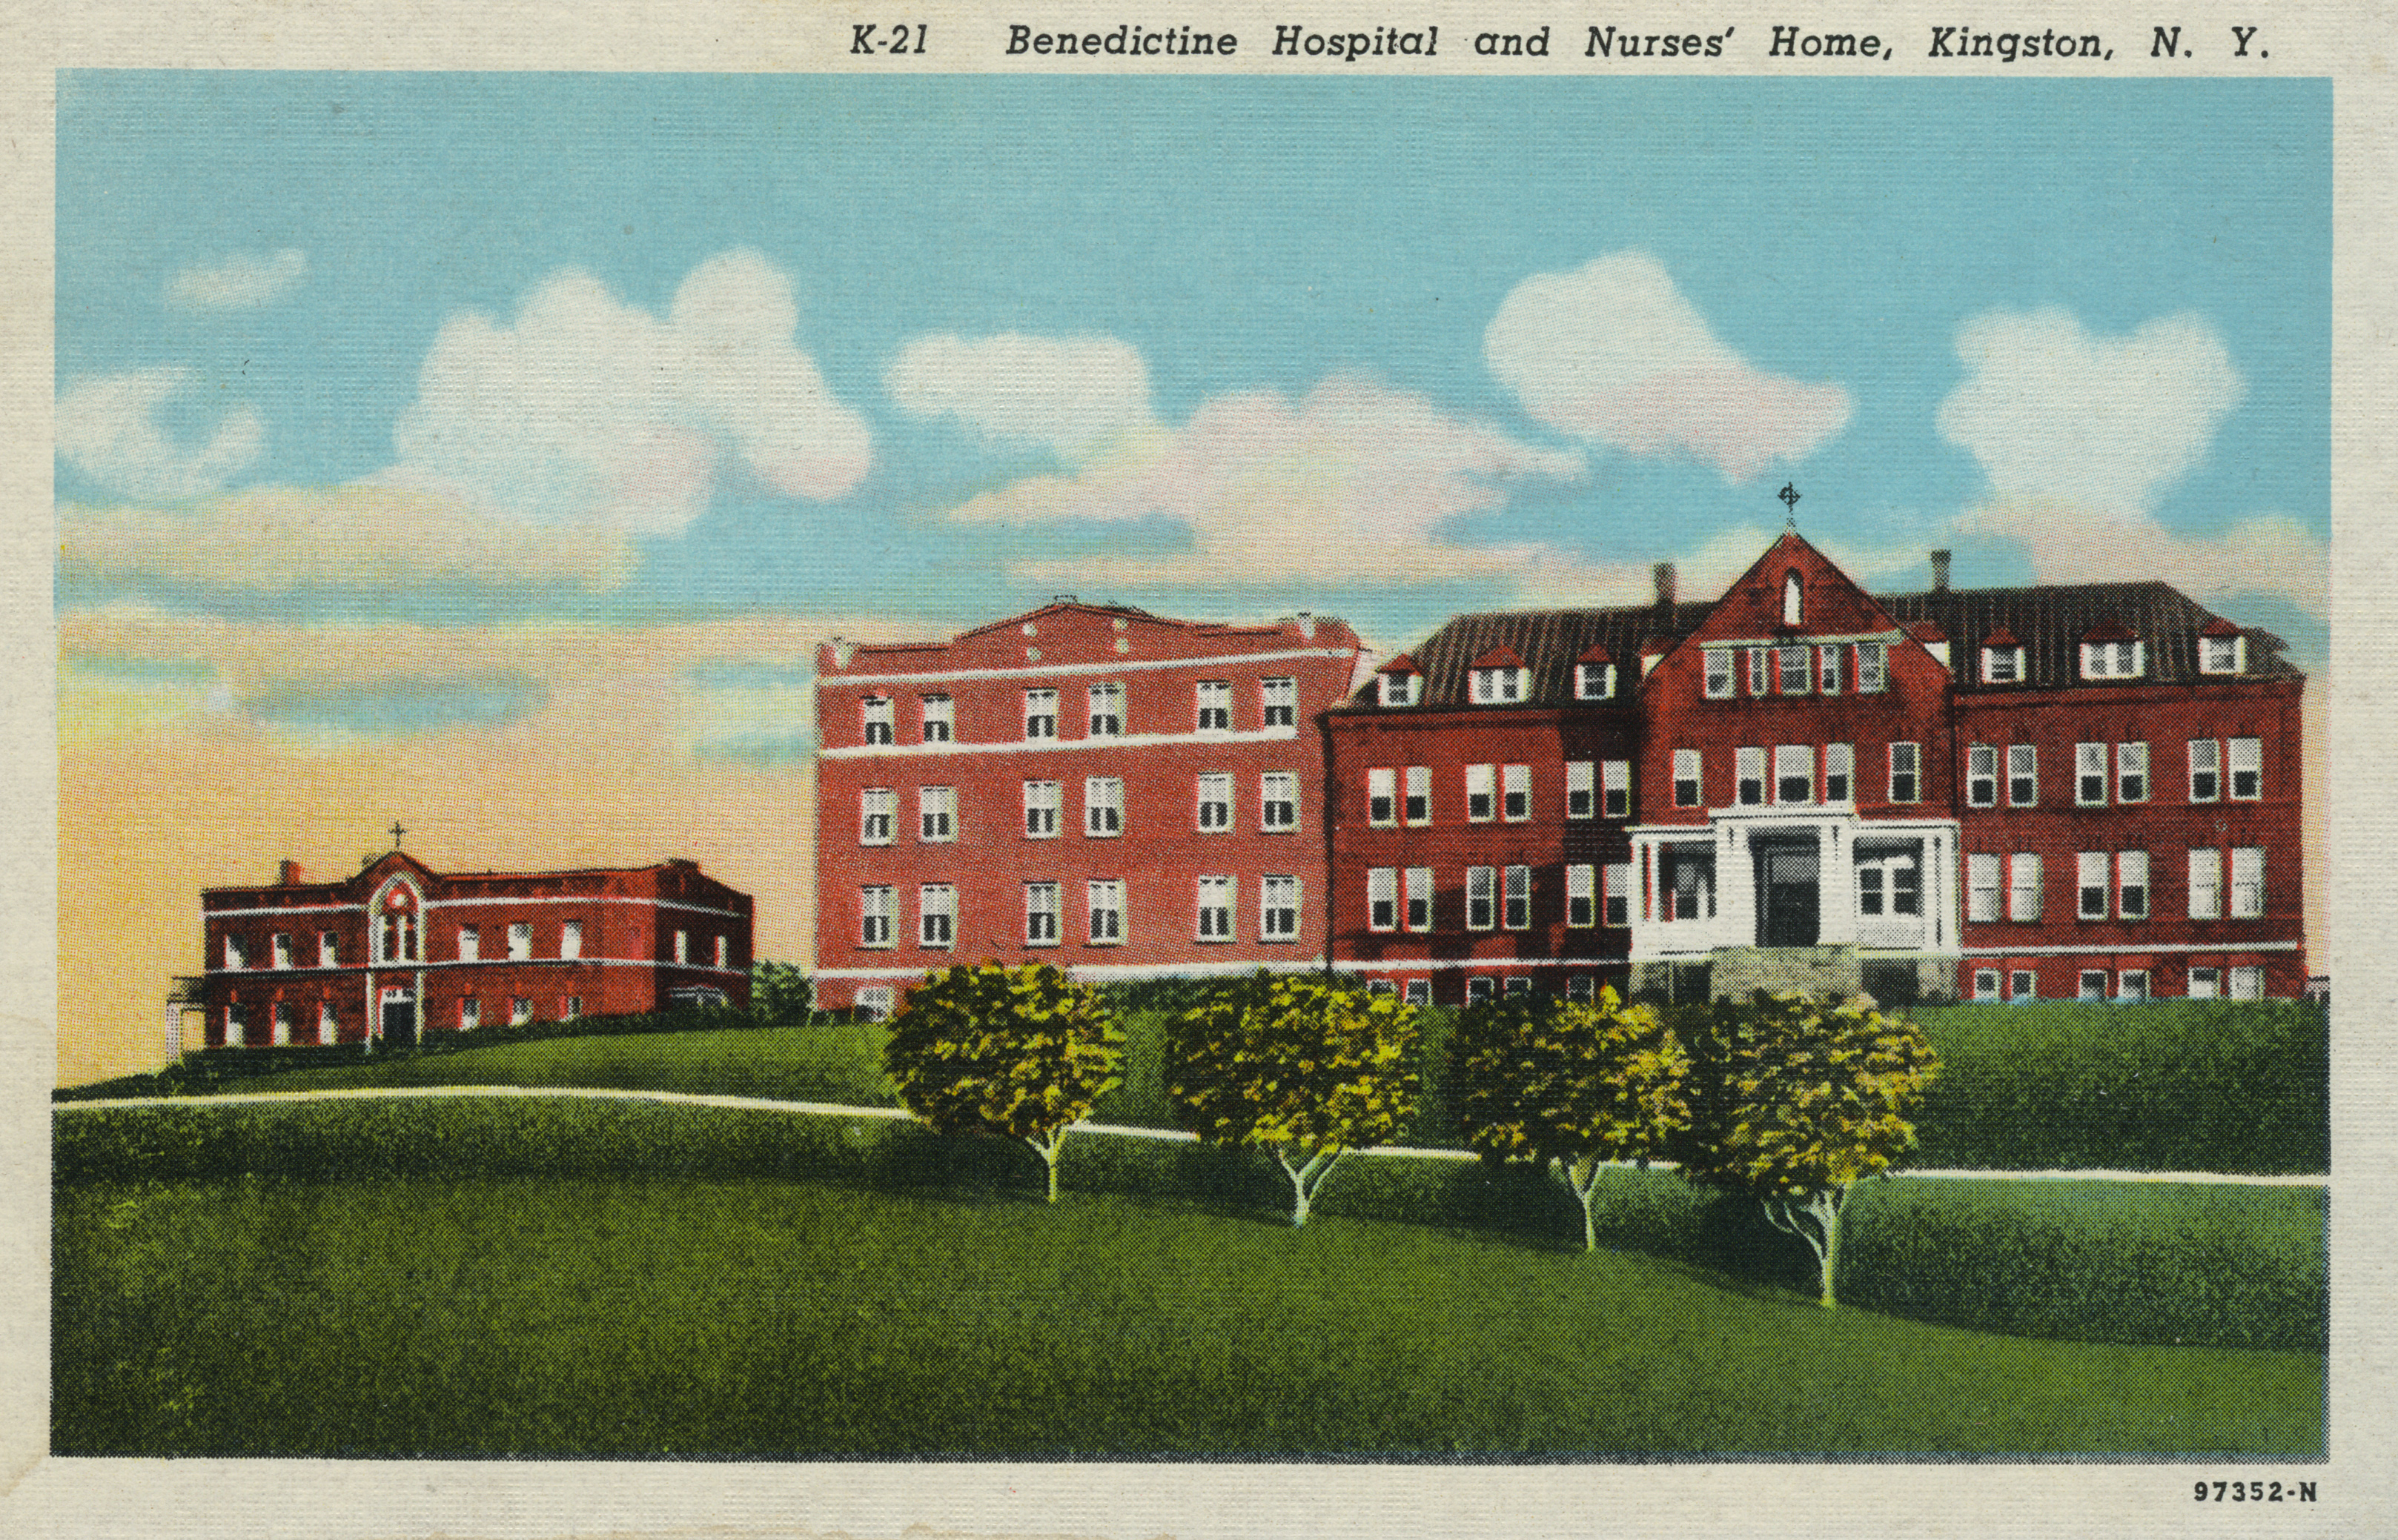 red brick three-story hospital building with a red brick two-story nurses' home to the left side. landscaped lawn and trees in front of both buildings.